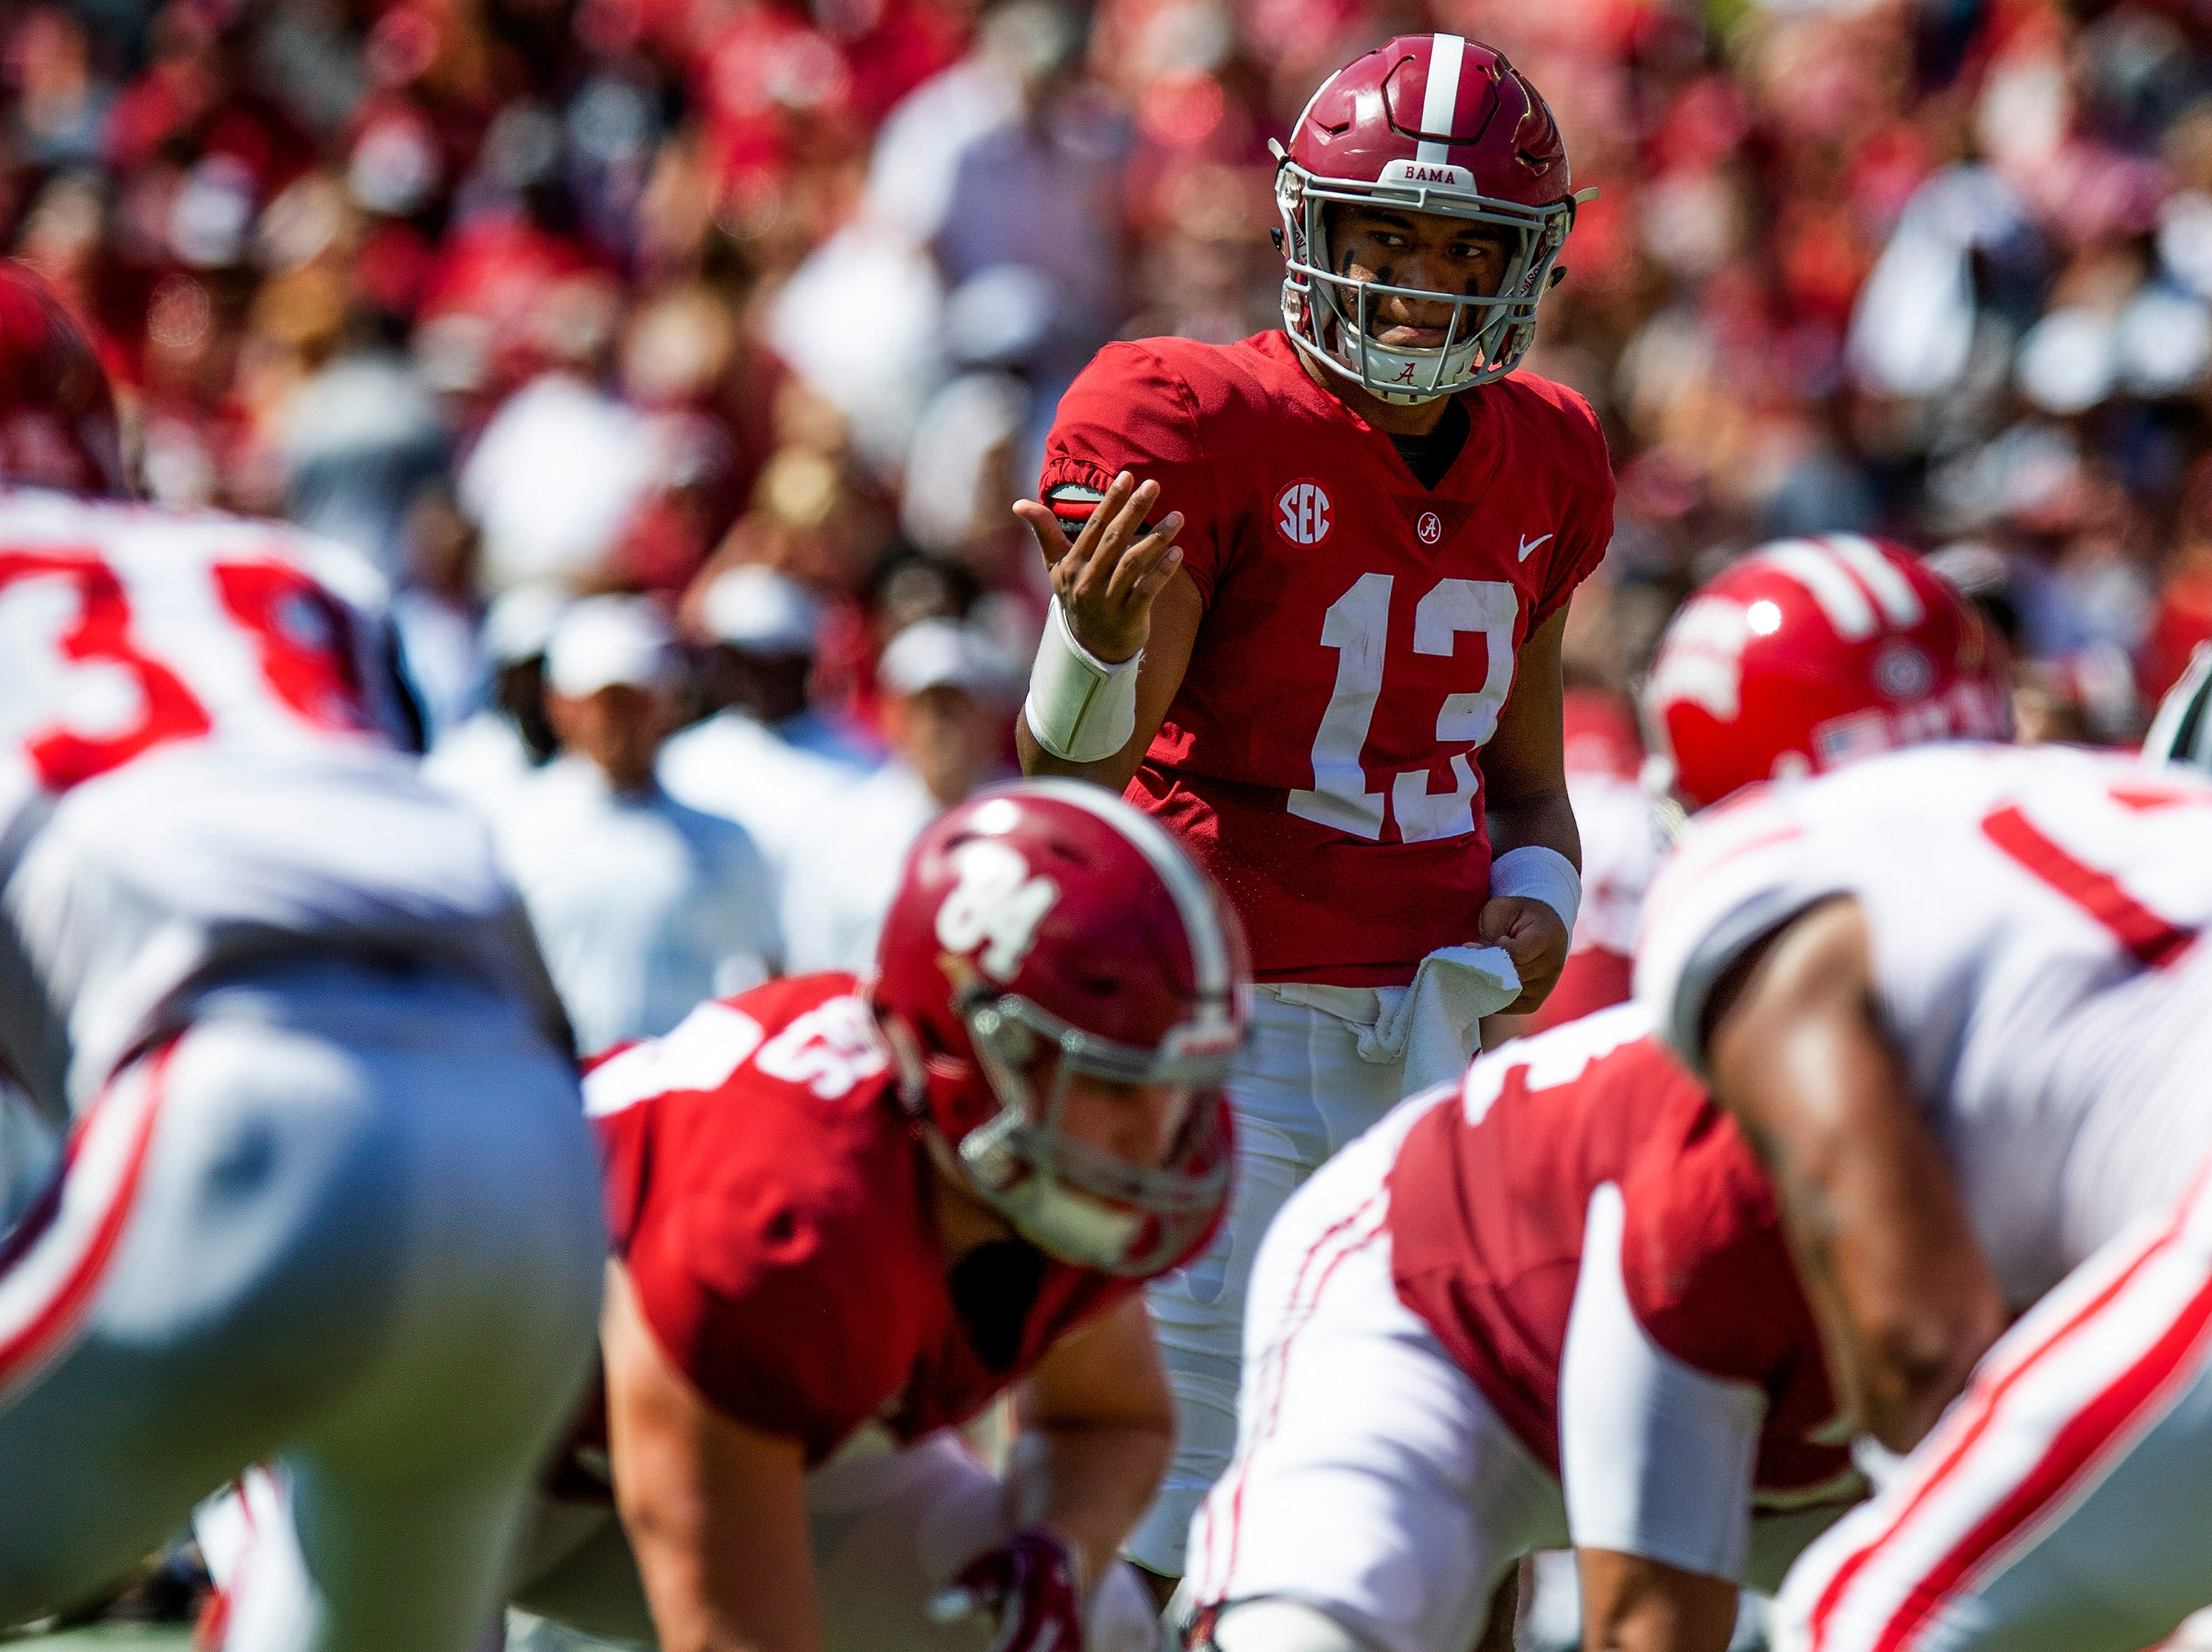 Alabama quarterback Tua Tagovailoa (13) directs from under center against Louisiana in first half action at Bryant-Denny Stadium in Tuscaloosa, Ala., on Saturday September 29, 2018.